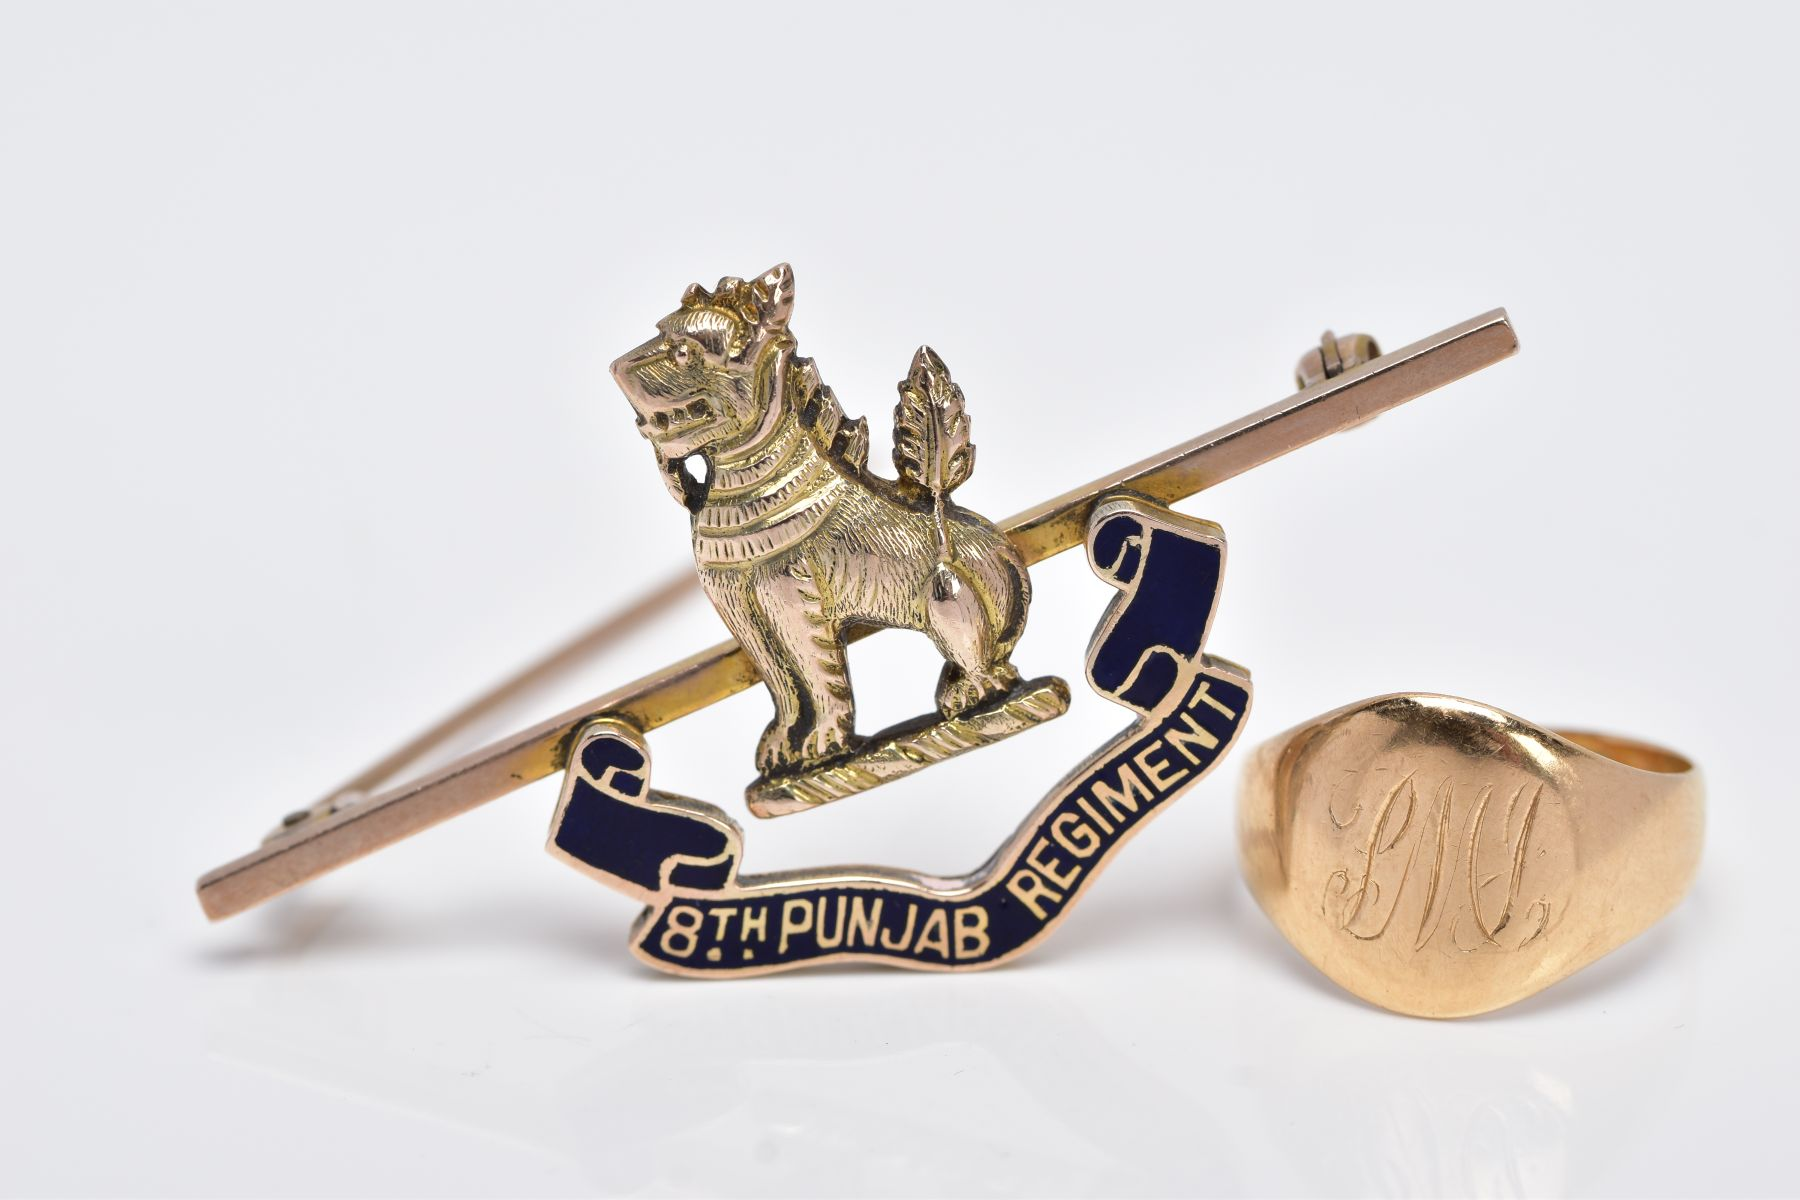 AN 18CT GOLD SIGNET RING AND A YELLOW METAL REGIMENT BADGE, oval signet ring with an engraved